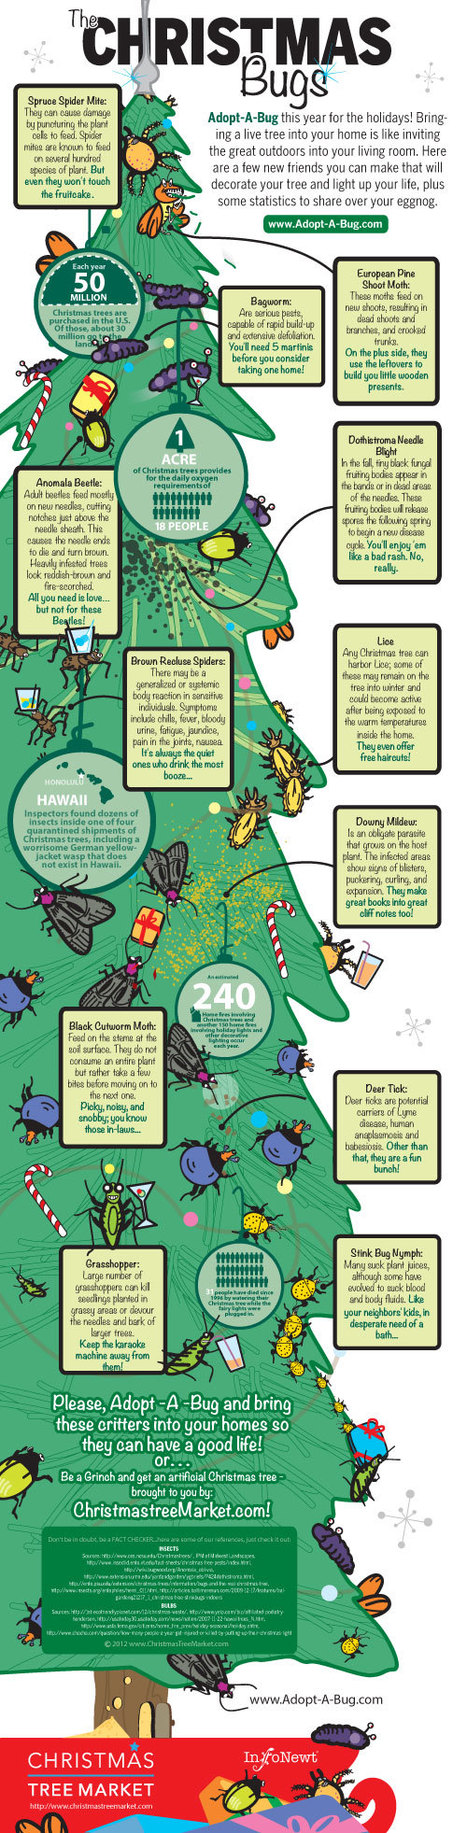 The Christmas Bugs: Adopt-A-Bug this holiday ... - Cool Infographics | Infographics Universe | Scoop.it